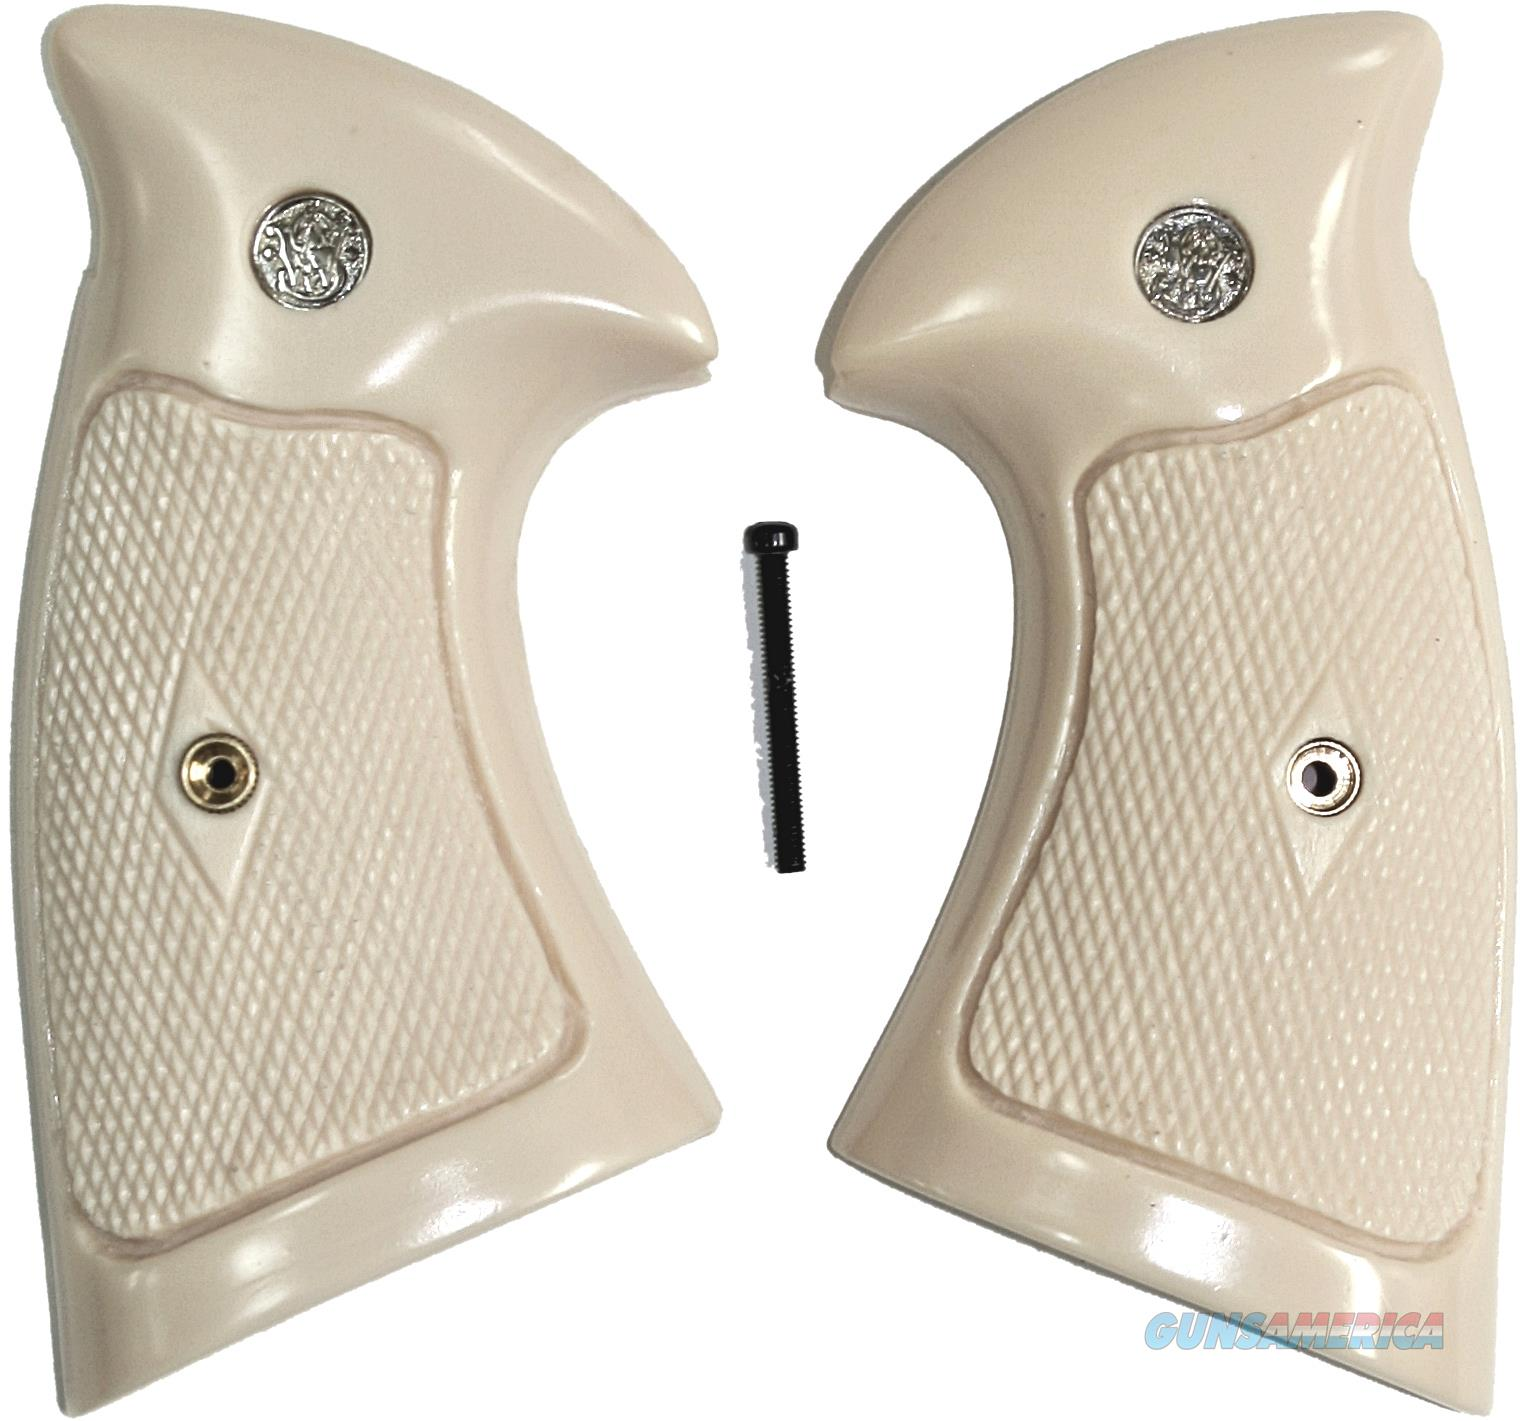 Smith & Wesson N Frame Target Style  Non-Guns > Gun Parts > Grips > Smith & Wesson